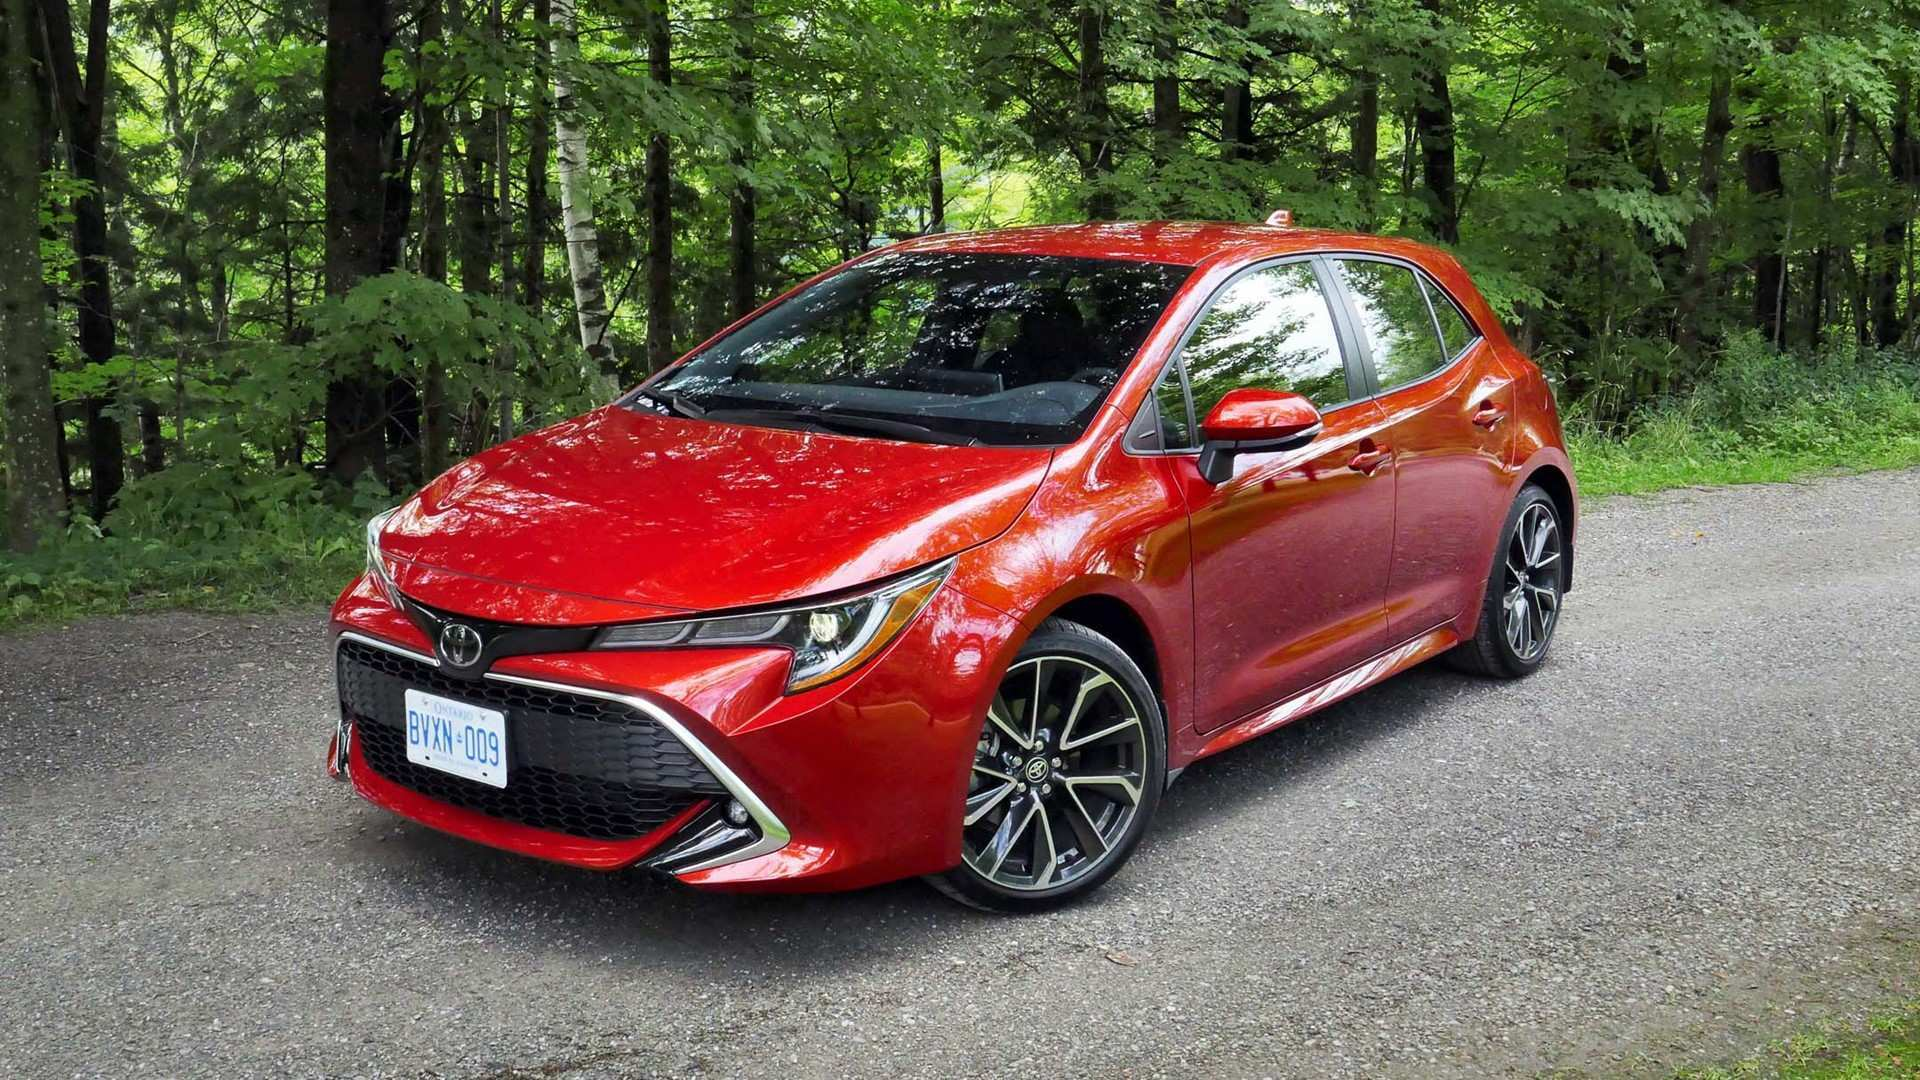 30 Best 2019 Toyota Corolla Hatchback Photos